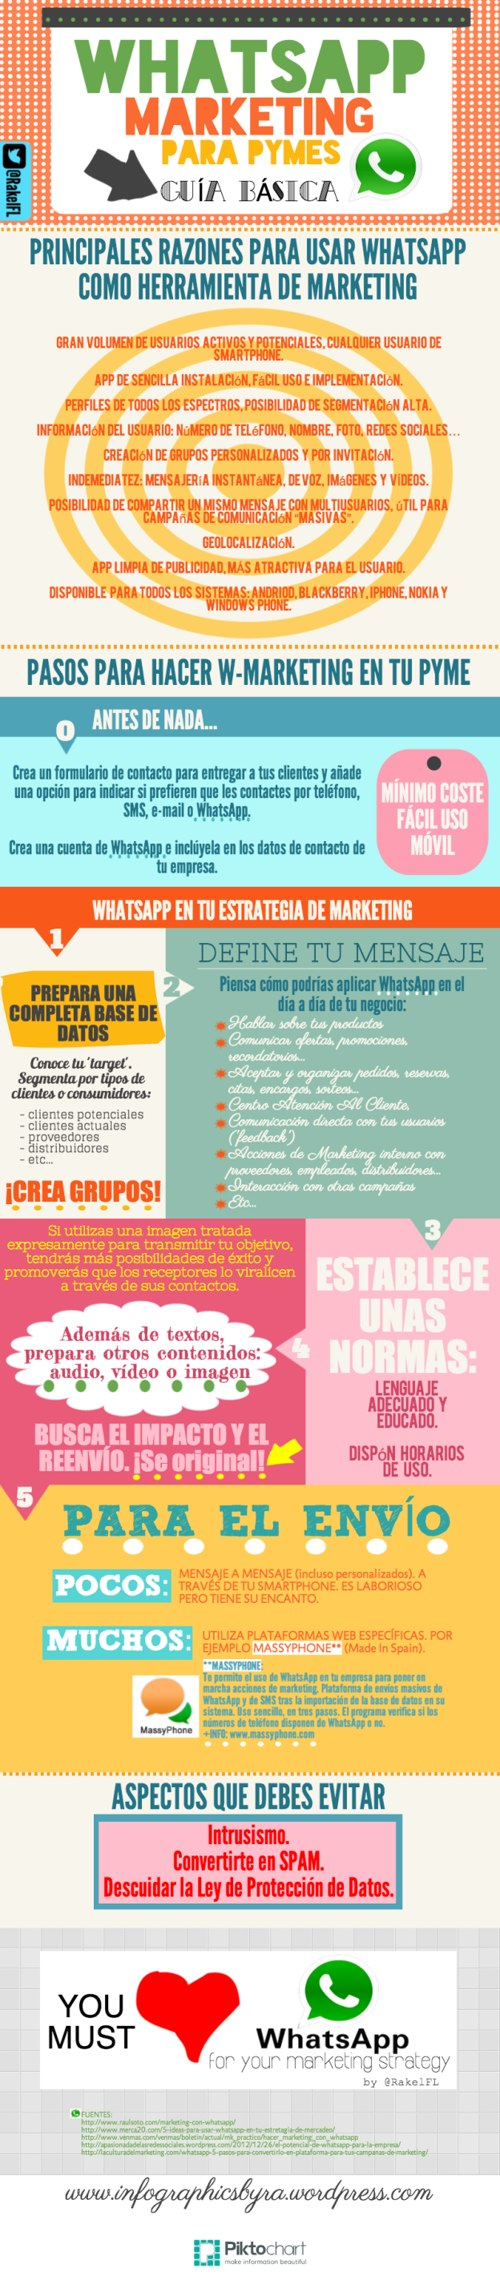 whatsapp-marketing-pymes-infografia